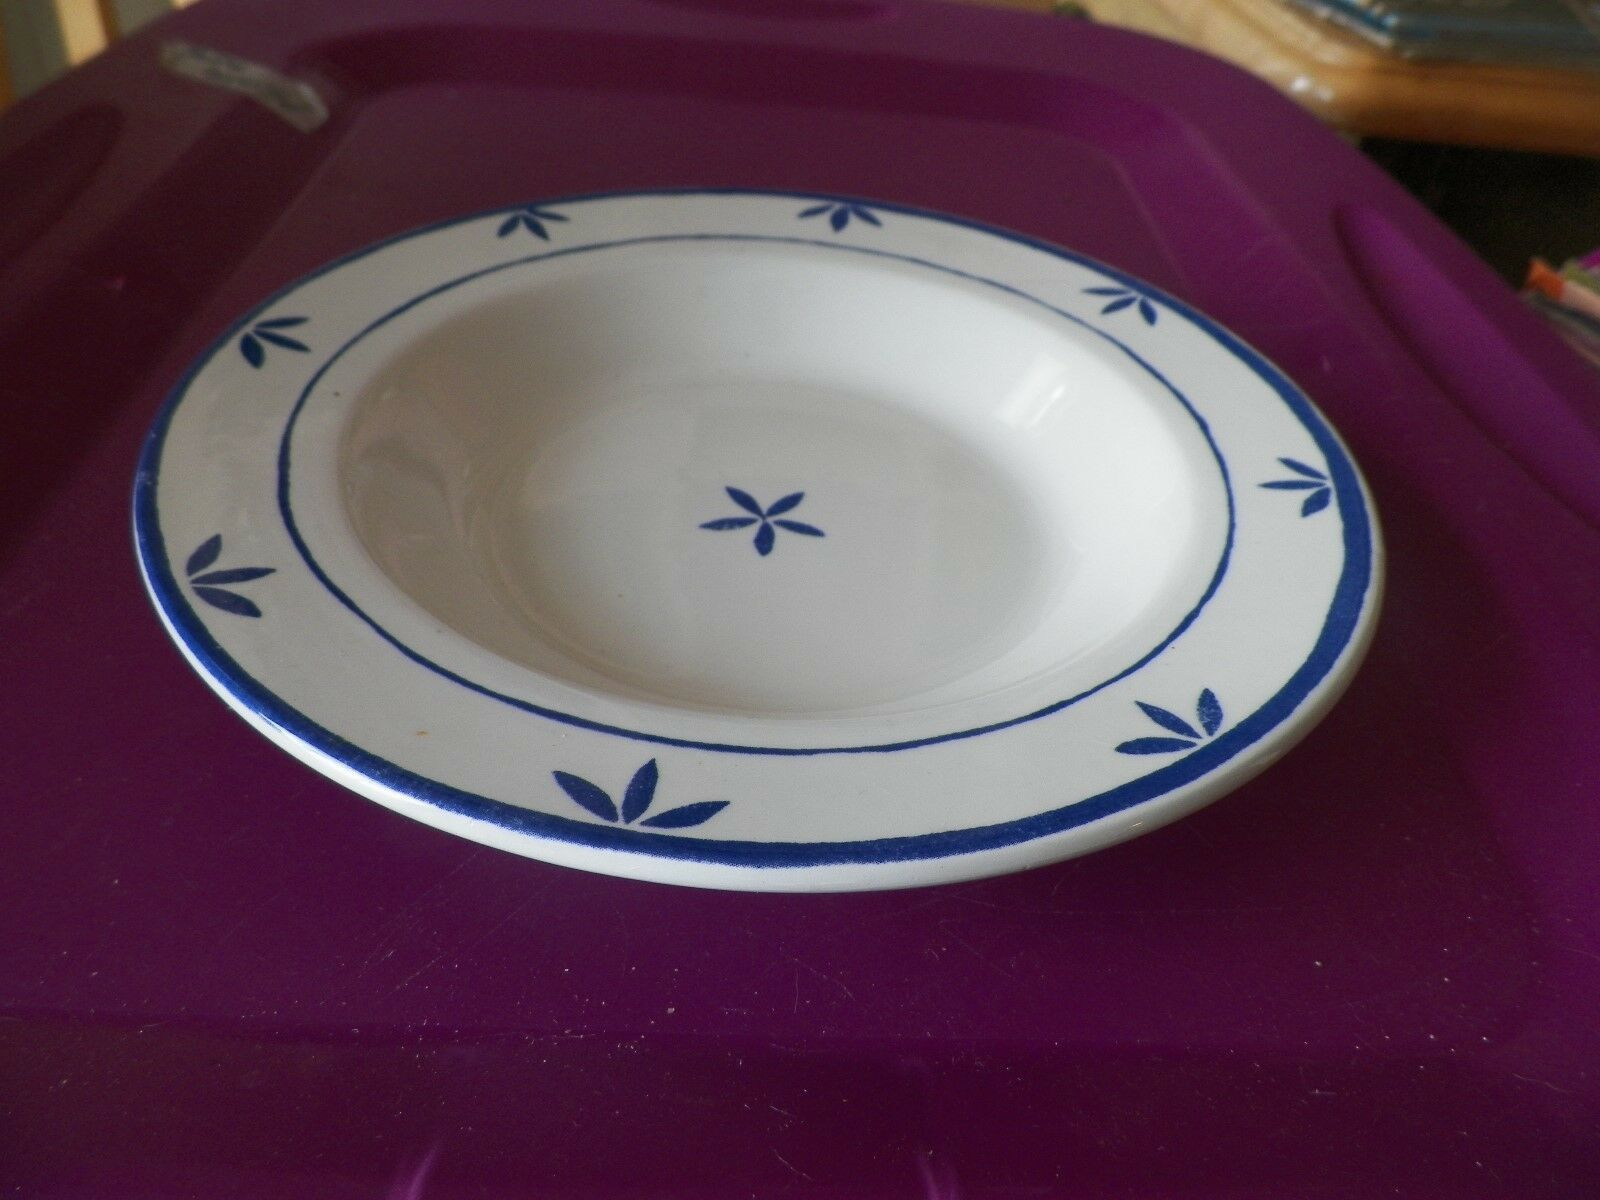 Pfaltzgraff soup bowl 3 available - $3.12